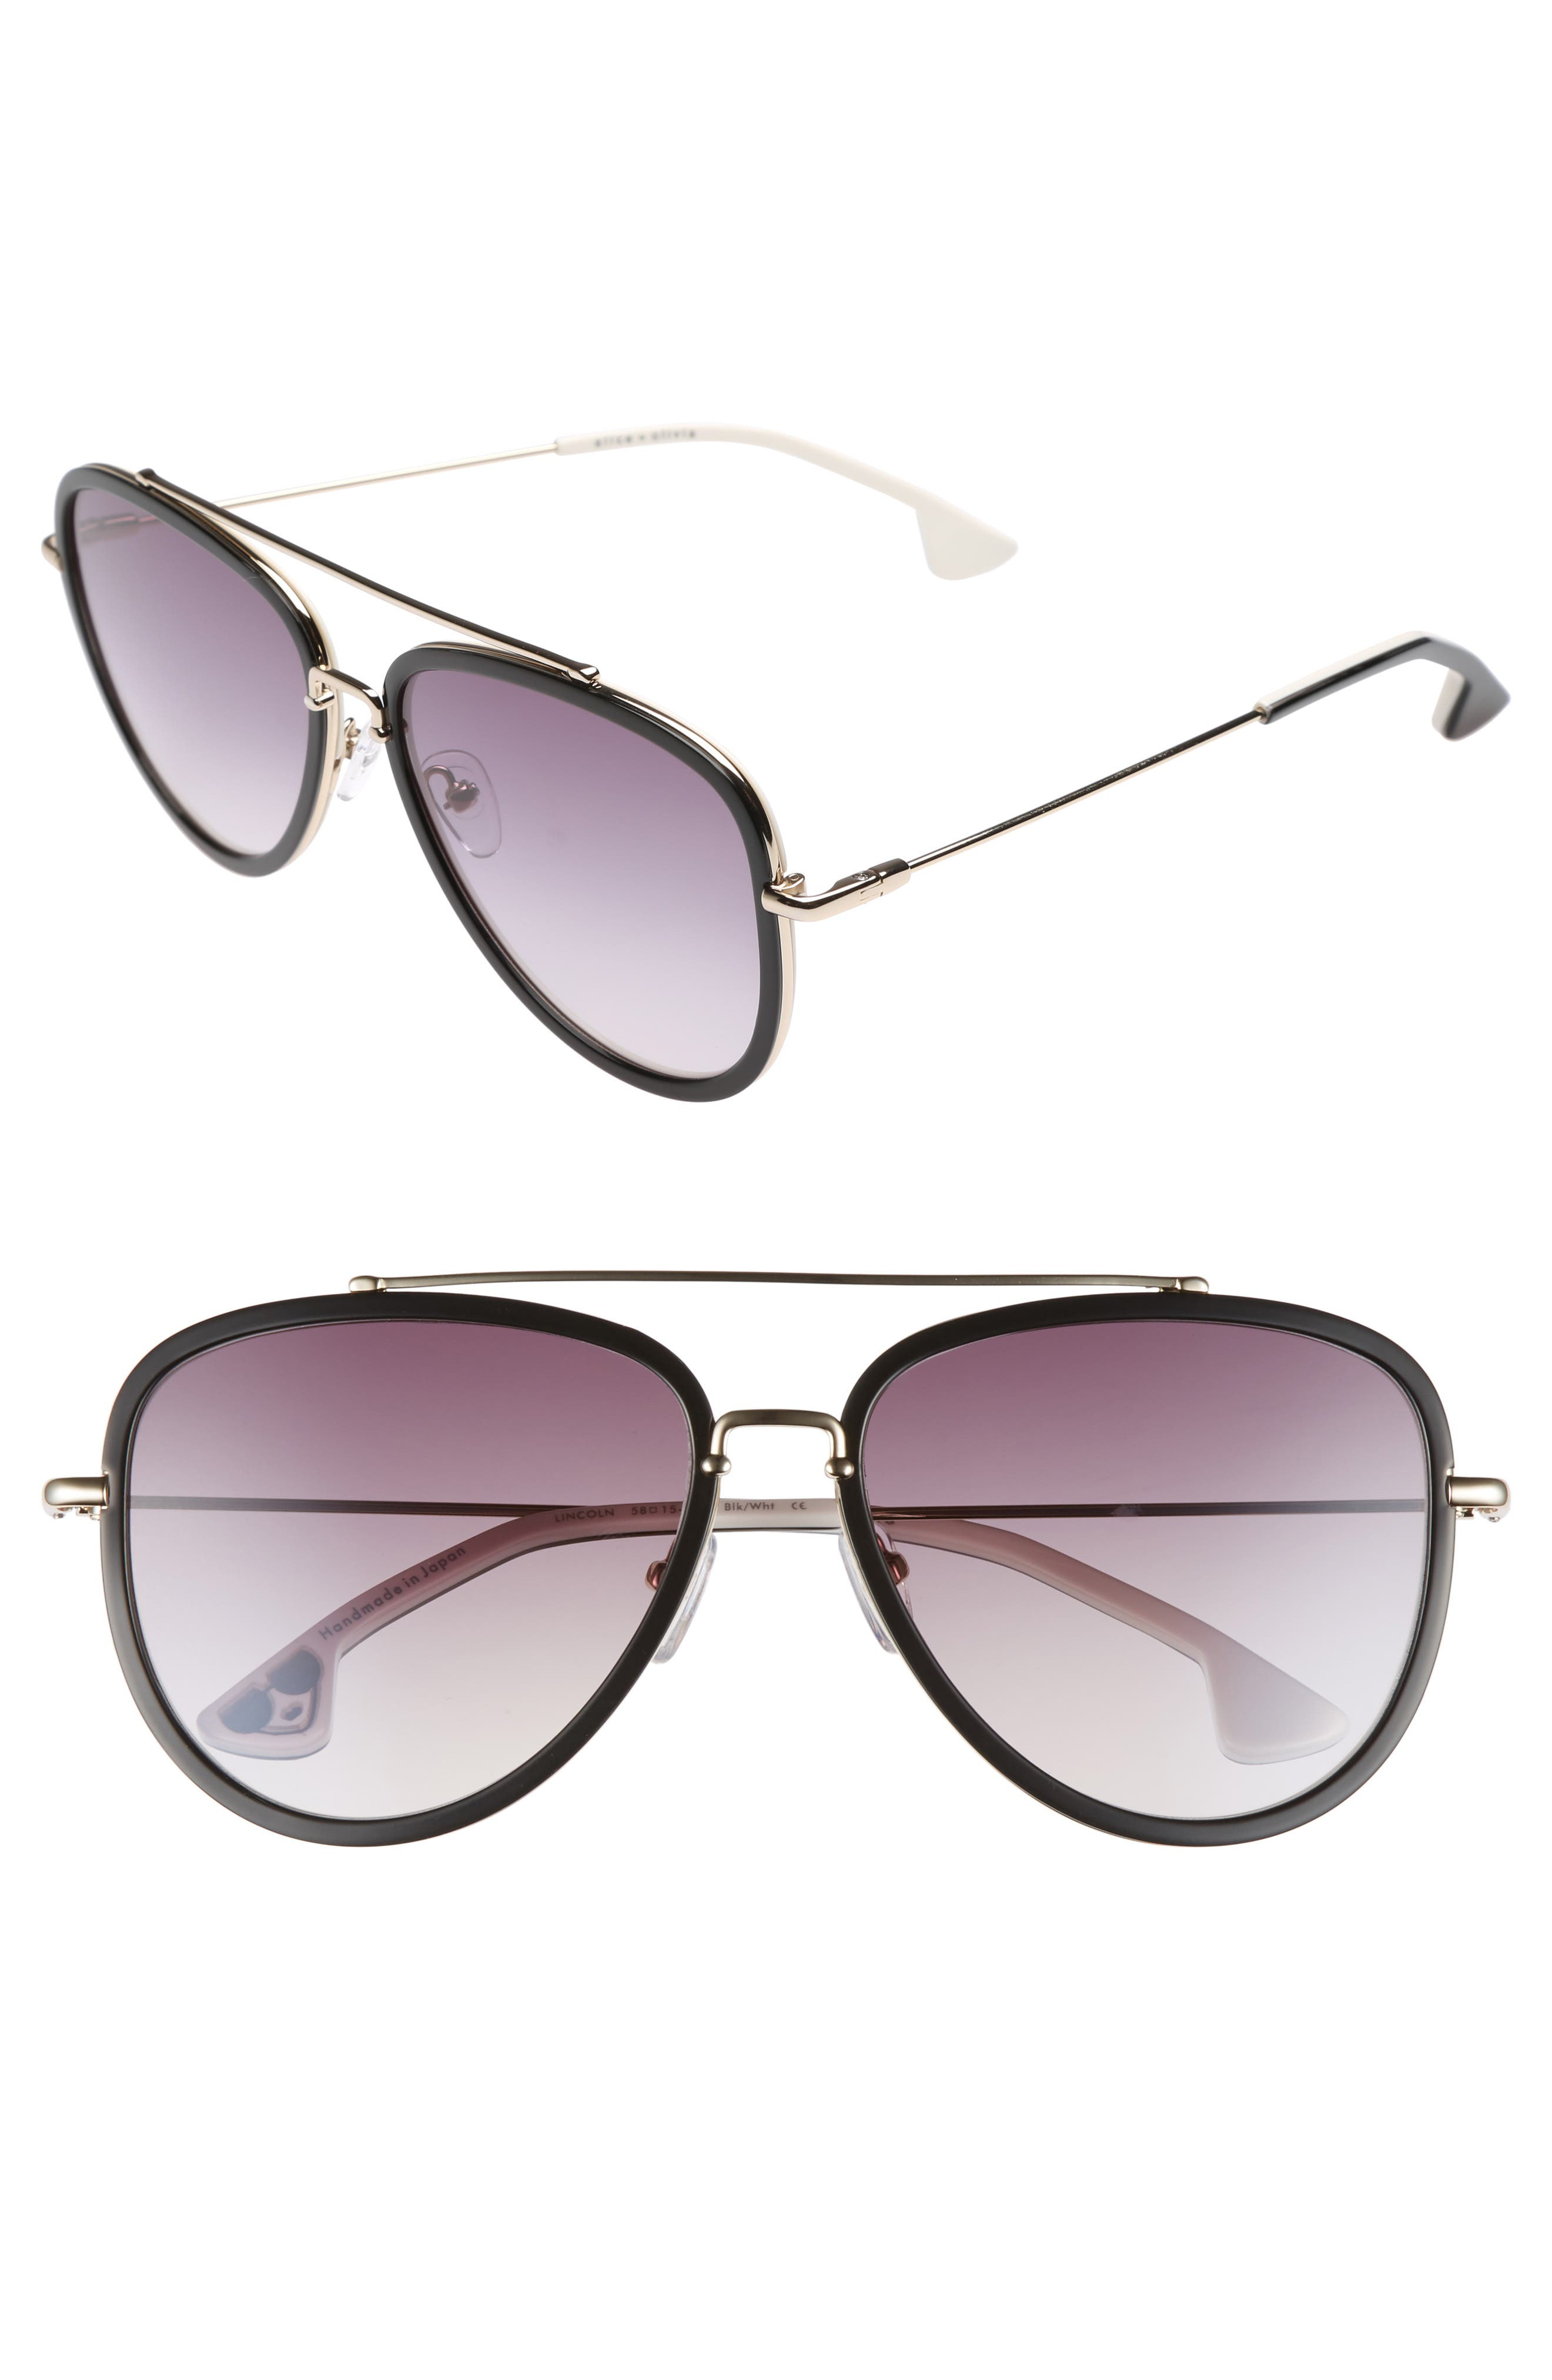 Lincoln 58mm Aviator Sunglasses,                         Main,                         color,